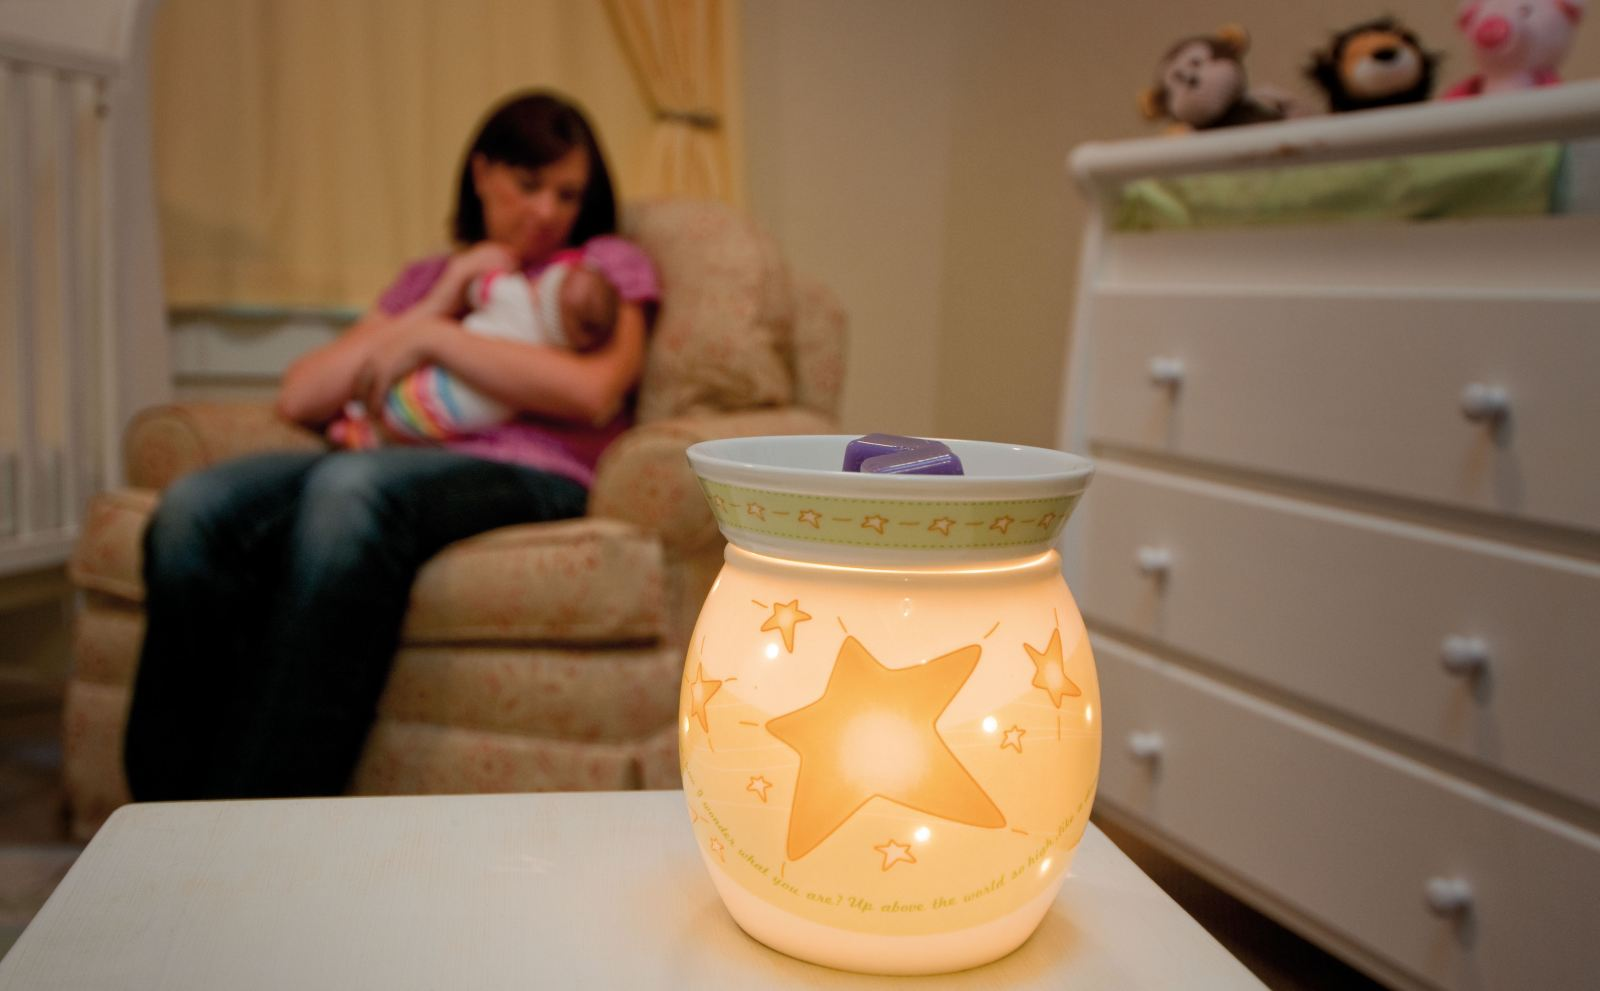 Le Little Star Scentsy Deluxe Nursery Warmer Part Of The Collection